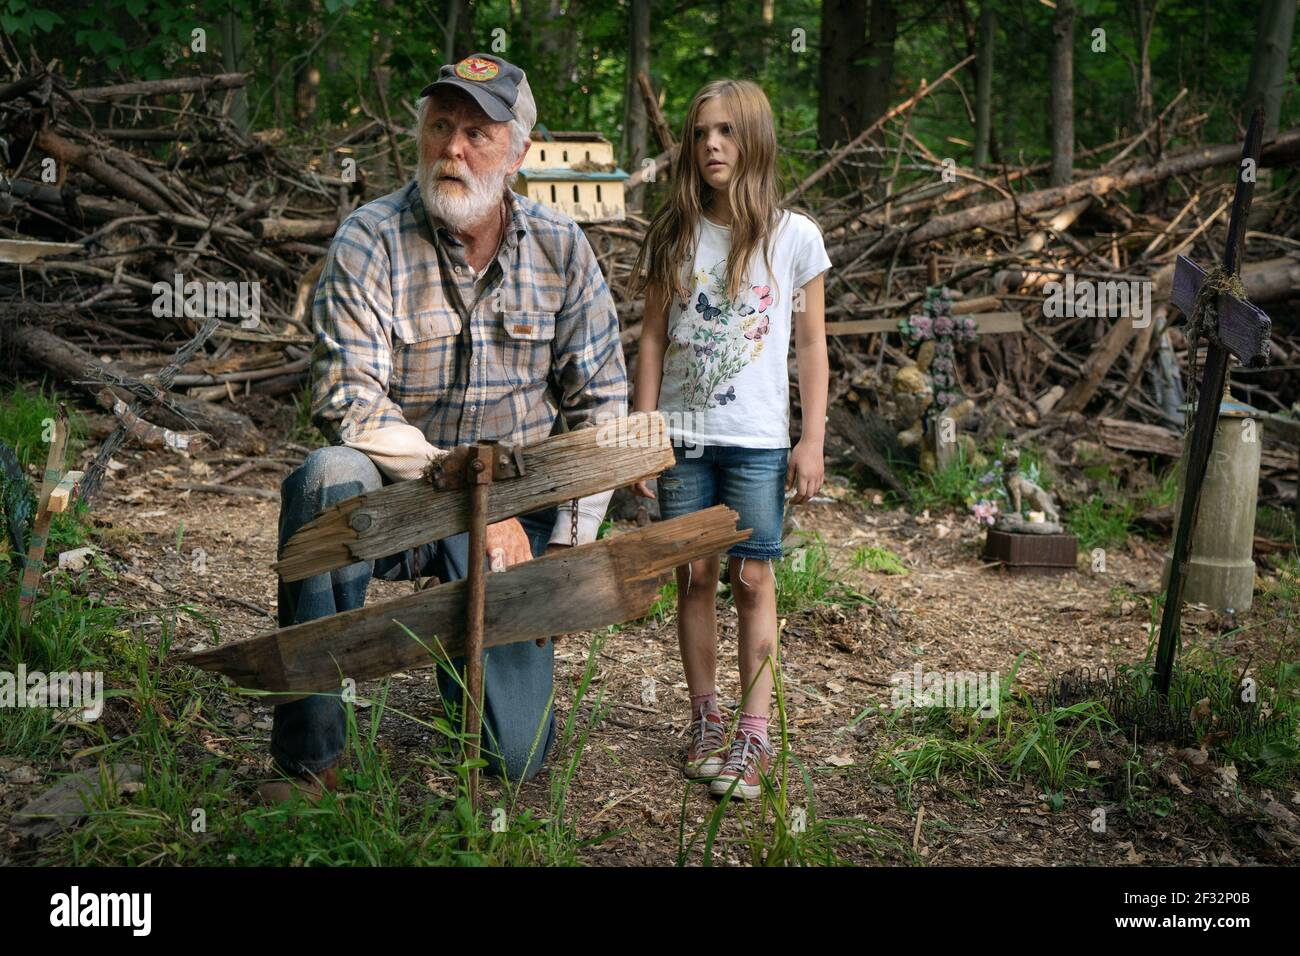 LITHGOW, LAURENCE, PET SEMATARY, 2019, ©KERRY HAYES/PARAMOUNT Banque D'Images